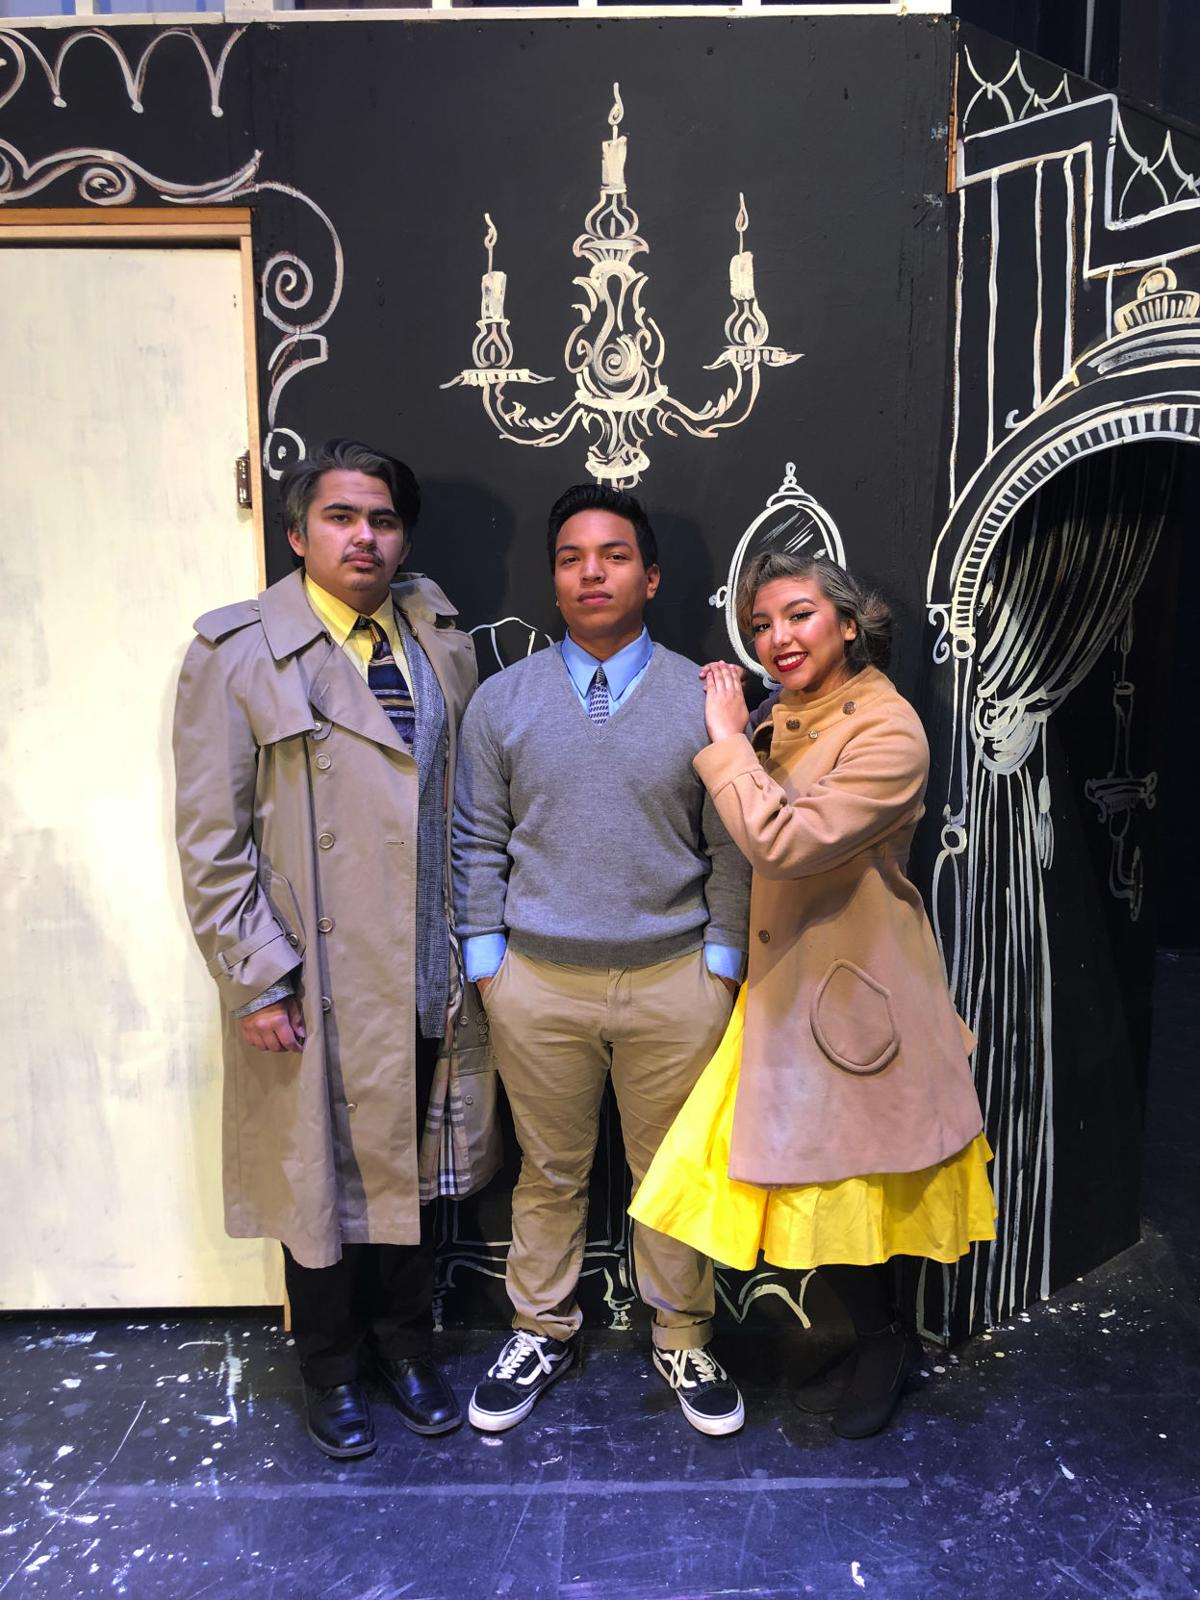 Addams Family' a scream come true for East High cast | Arts